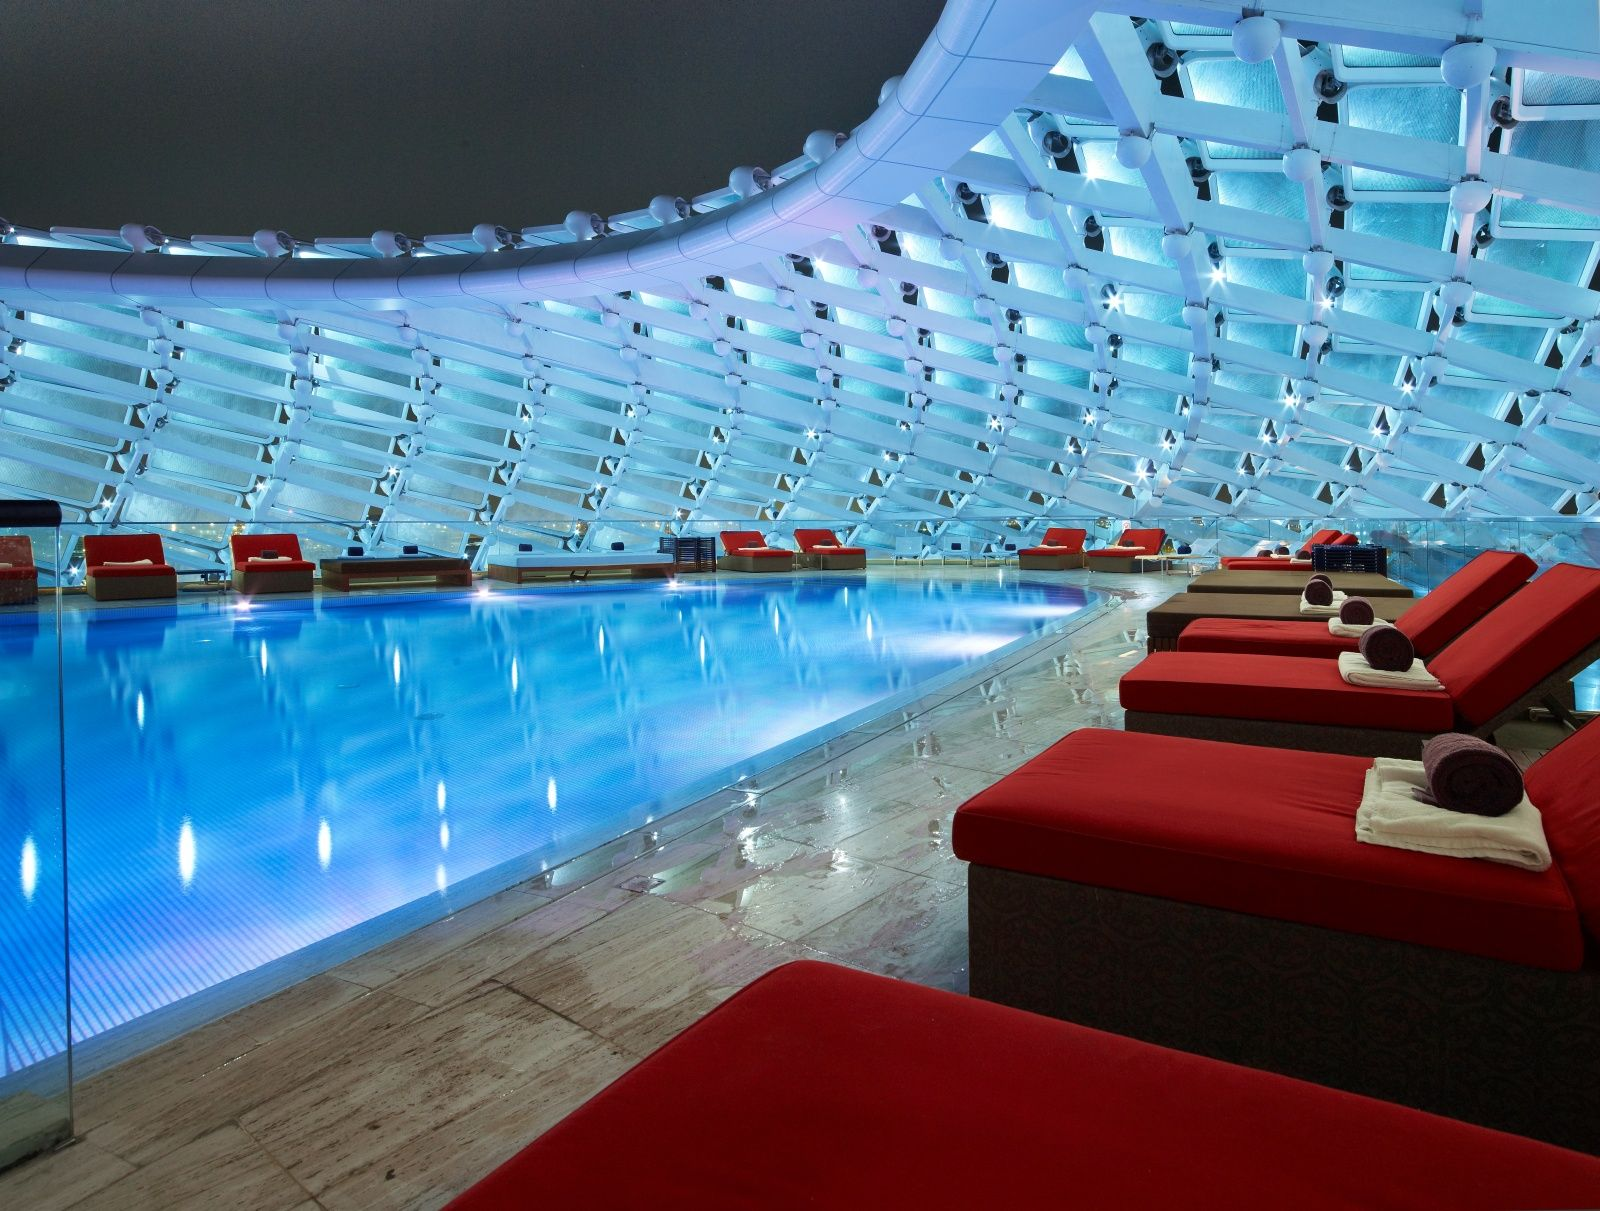 The yas viceroy hotel in abu dhabi features 2 rooftop - Hotels in abu dhabi with swimming pool ...